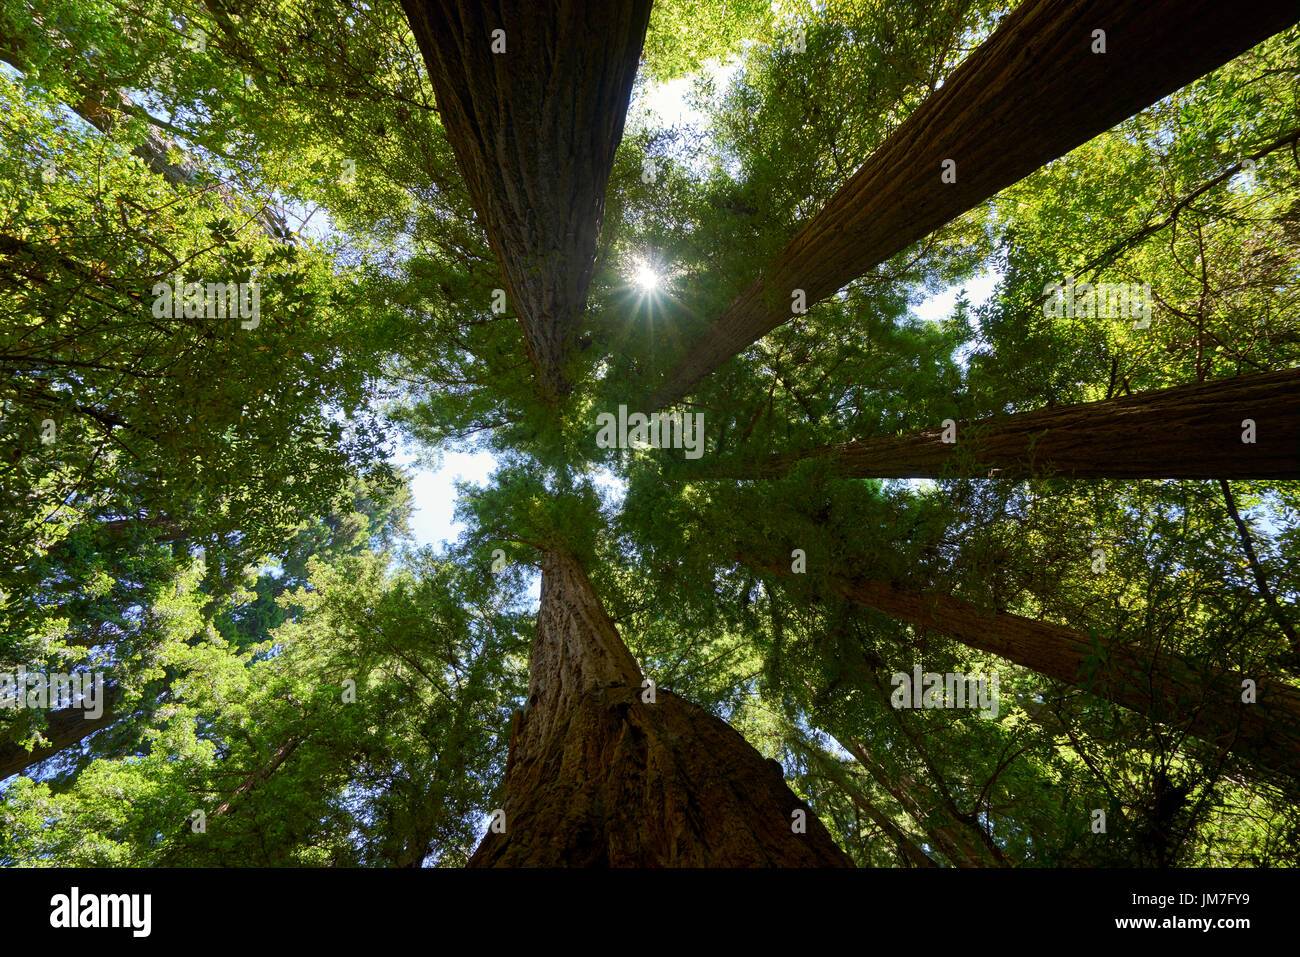 finding sun beyond the soaring Redwood trees - Stock Image